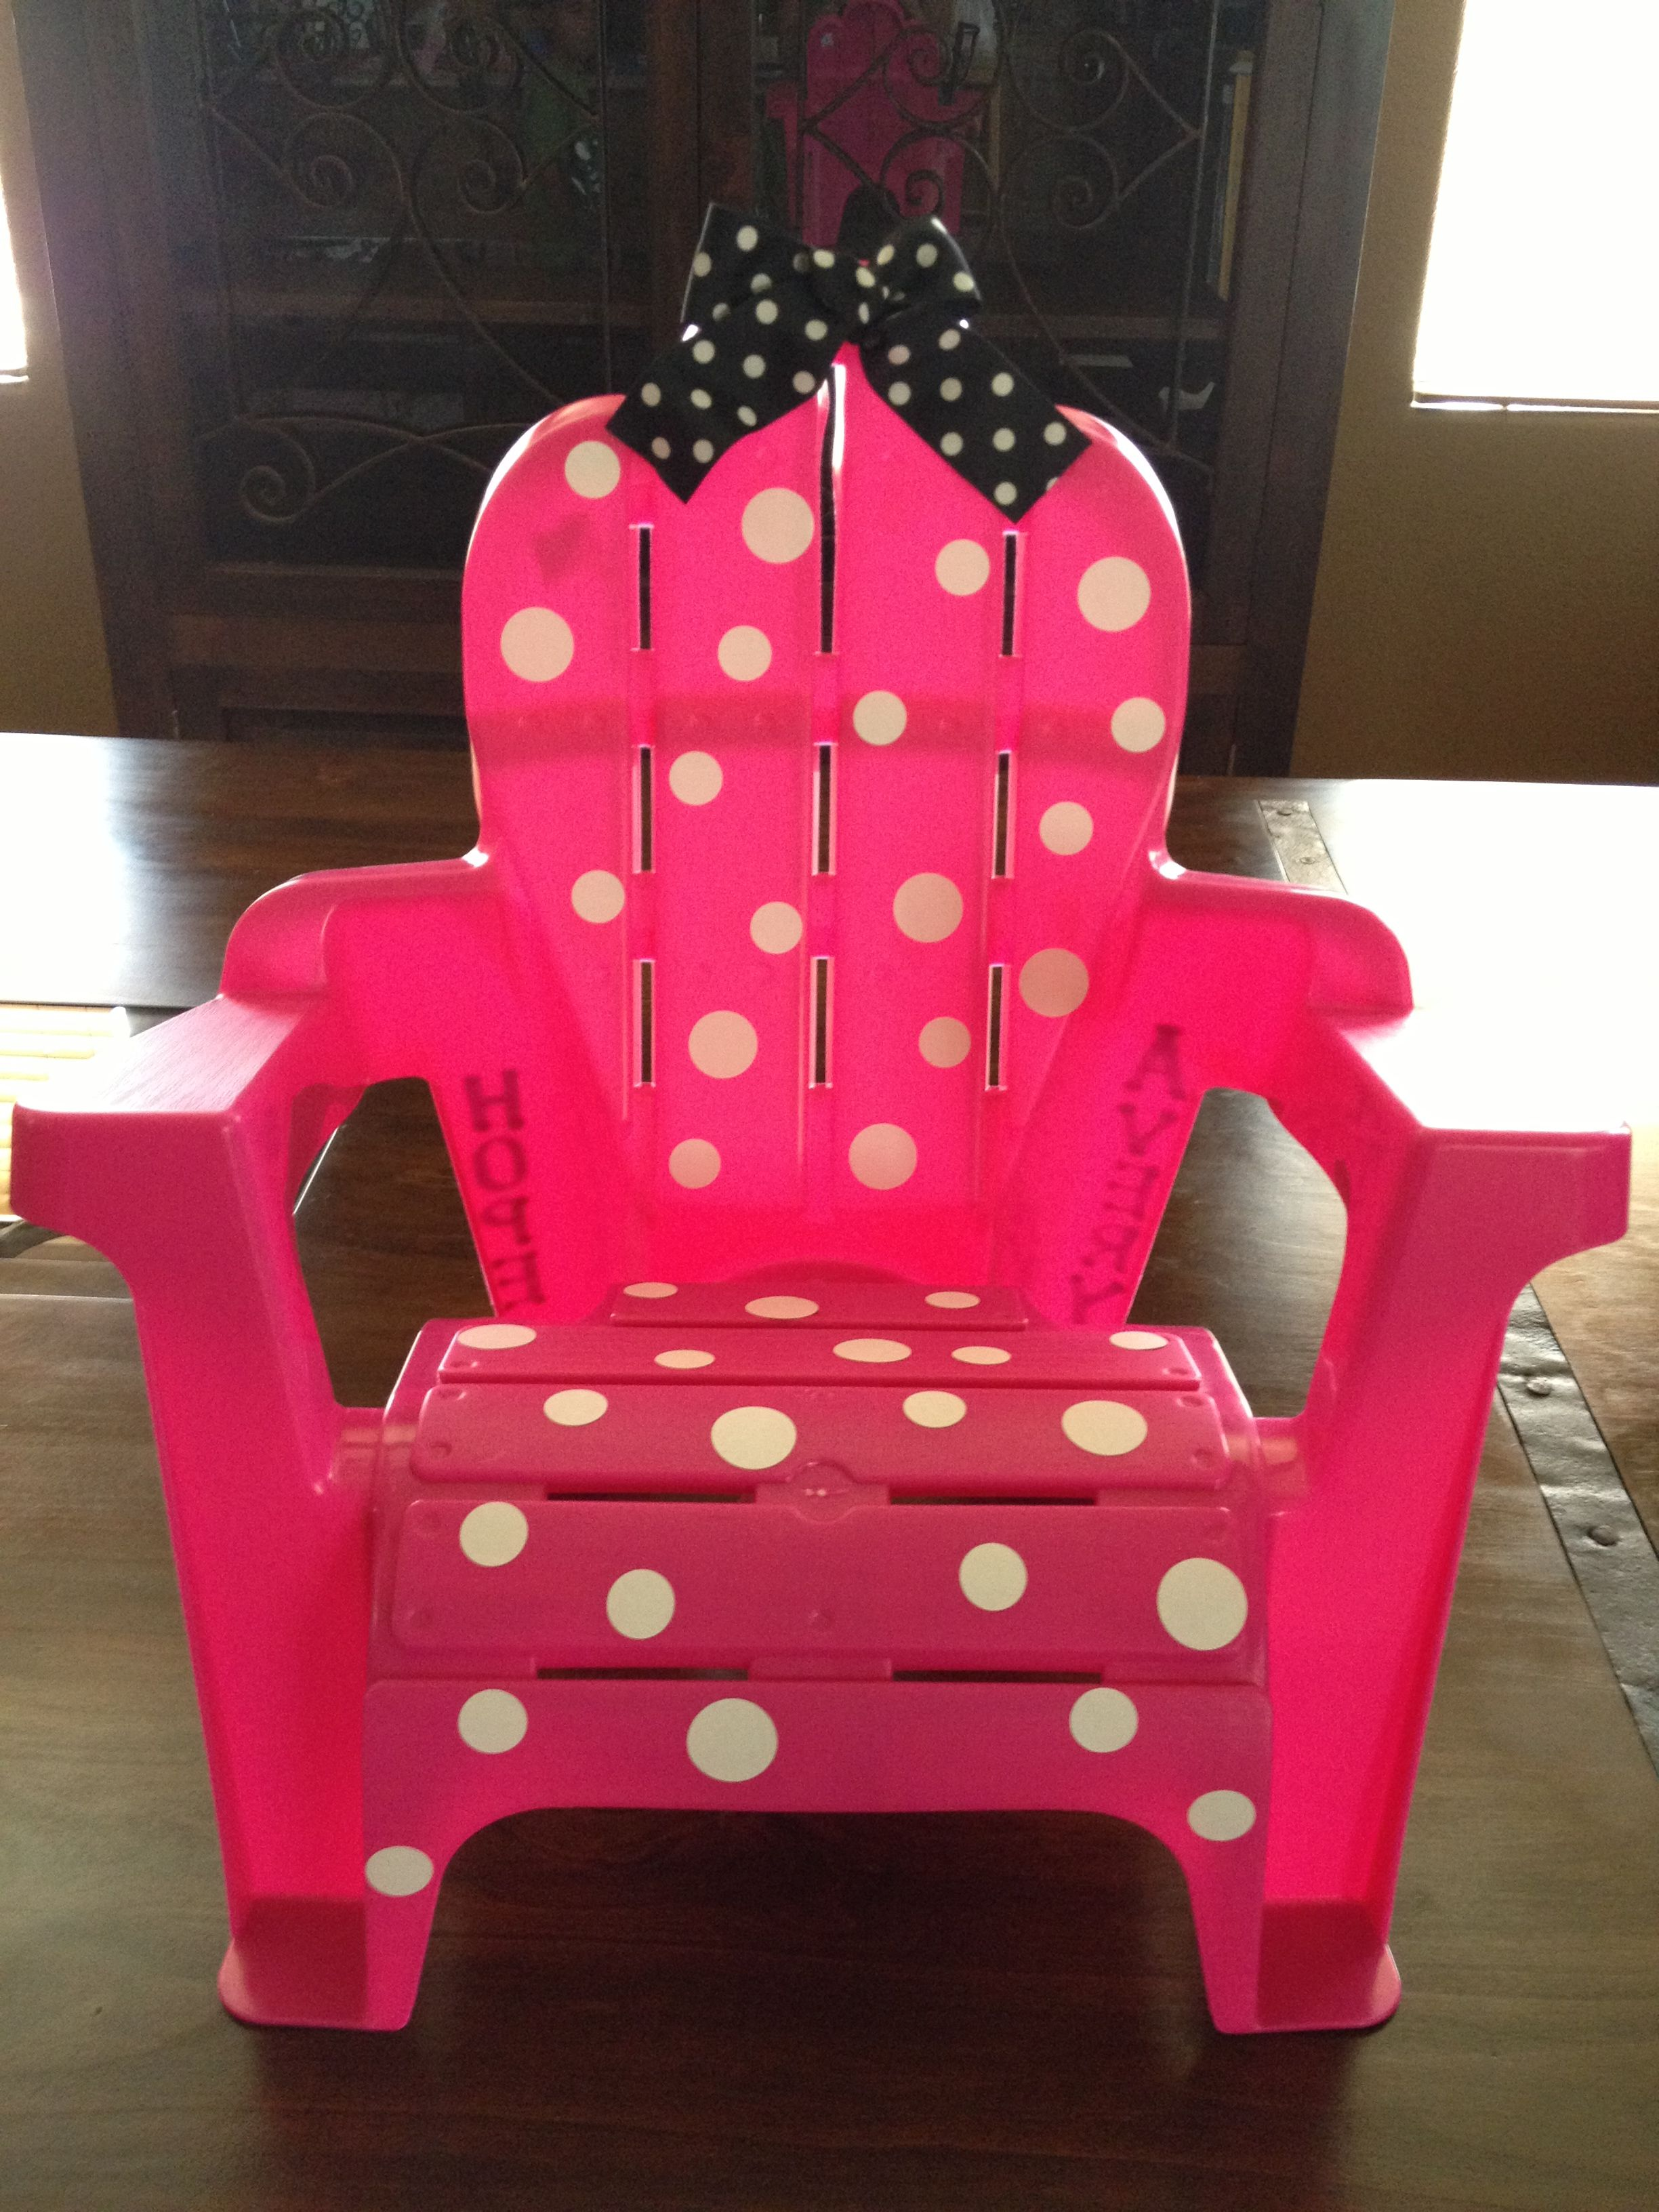 Minnie Mouse Stoel : Minnie mouse chair made out of a plain toddler chair from wal mart